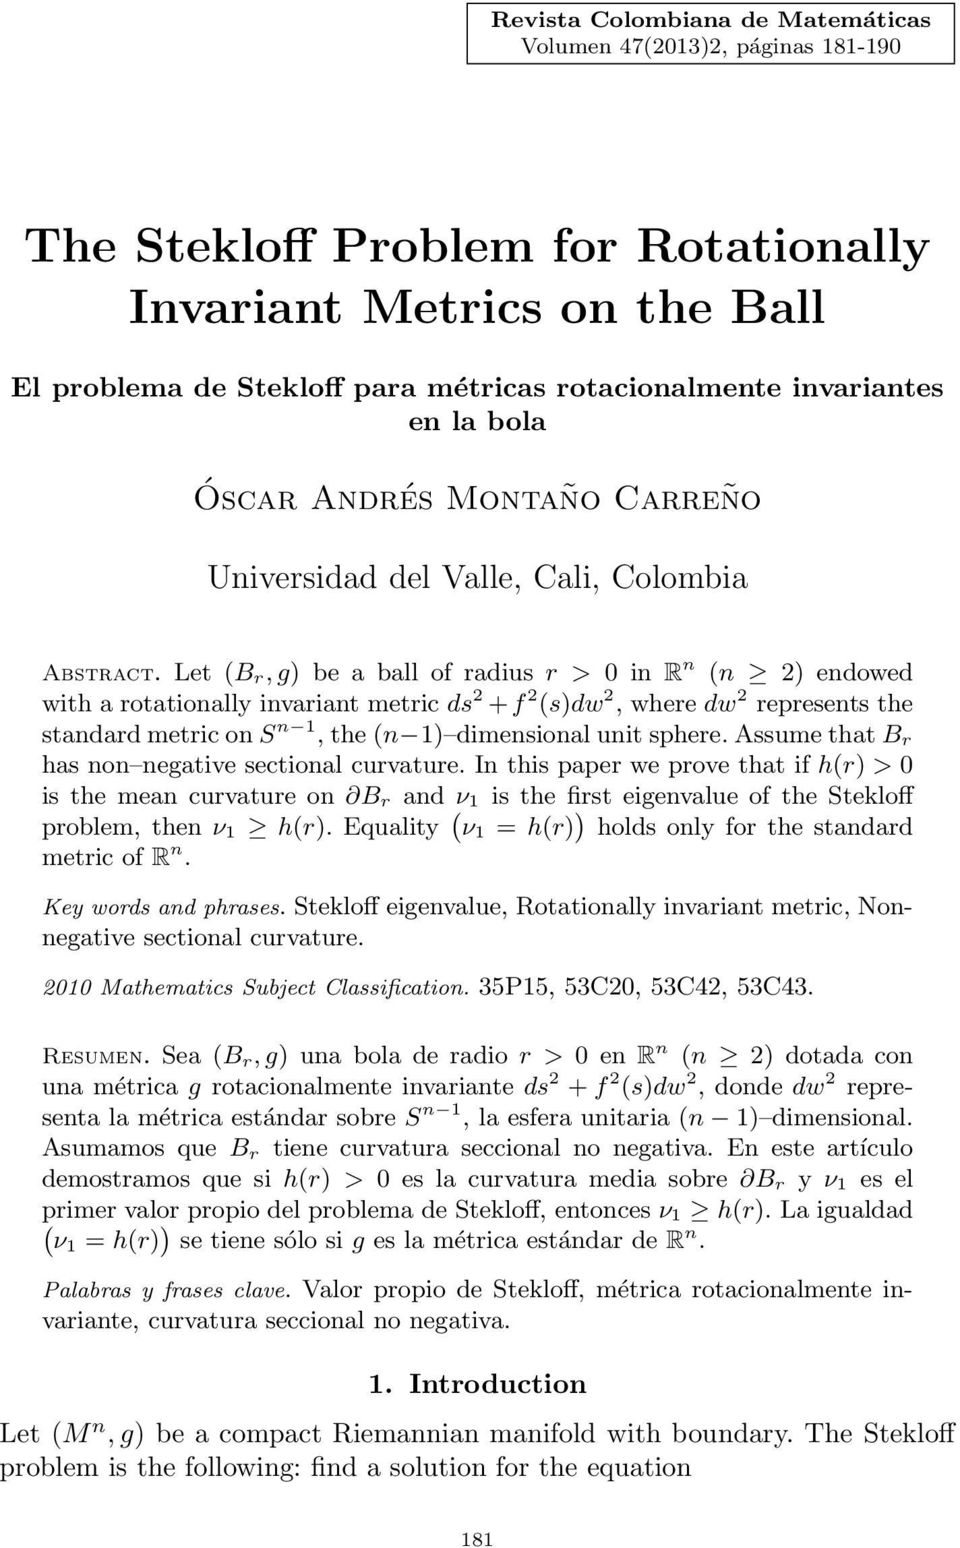 Let (B r, g be a ball o radius r > 0 in R n (n 2 endowed with a rotationally invariant metric ds 2 + 2 (sdw 2, where dw 2 represents the standard metric on S n, the (n dimensional unit sphere.